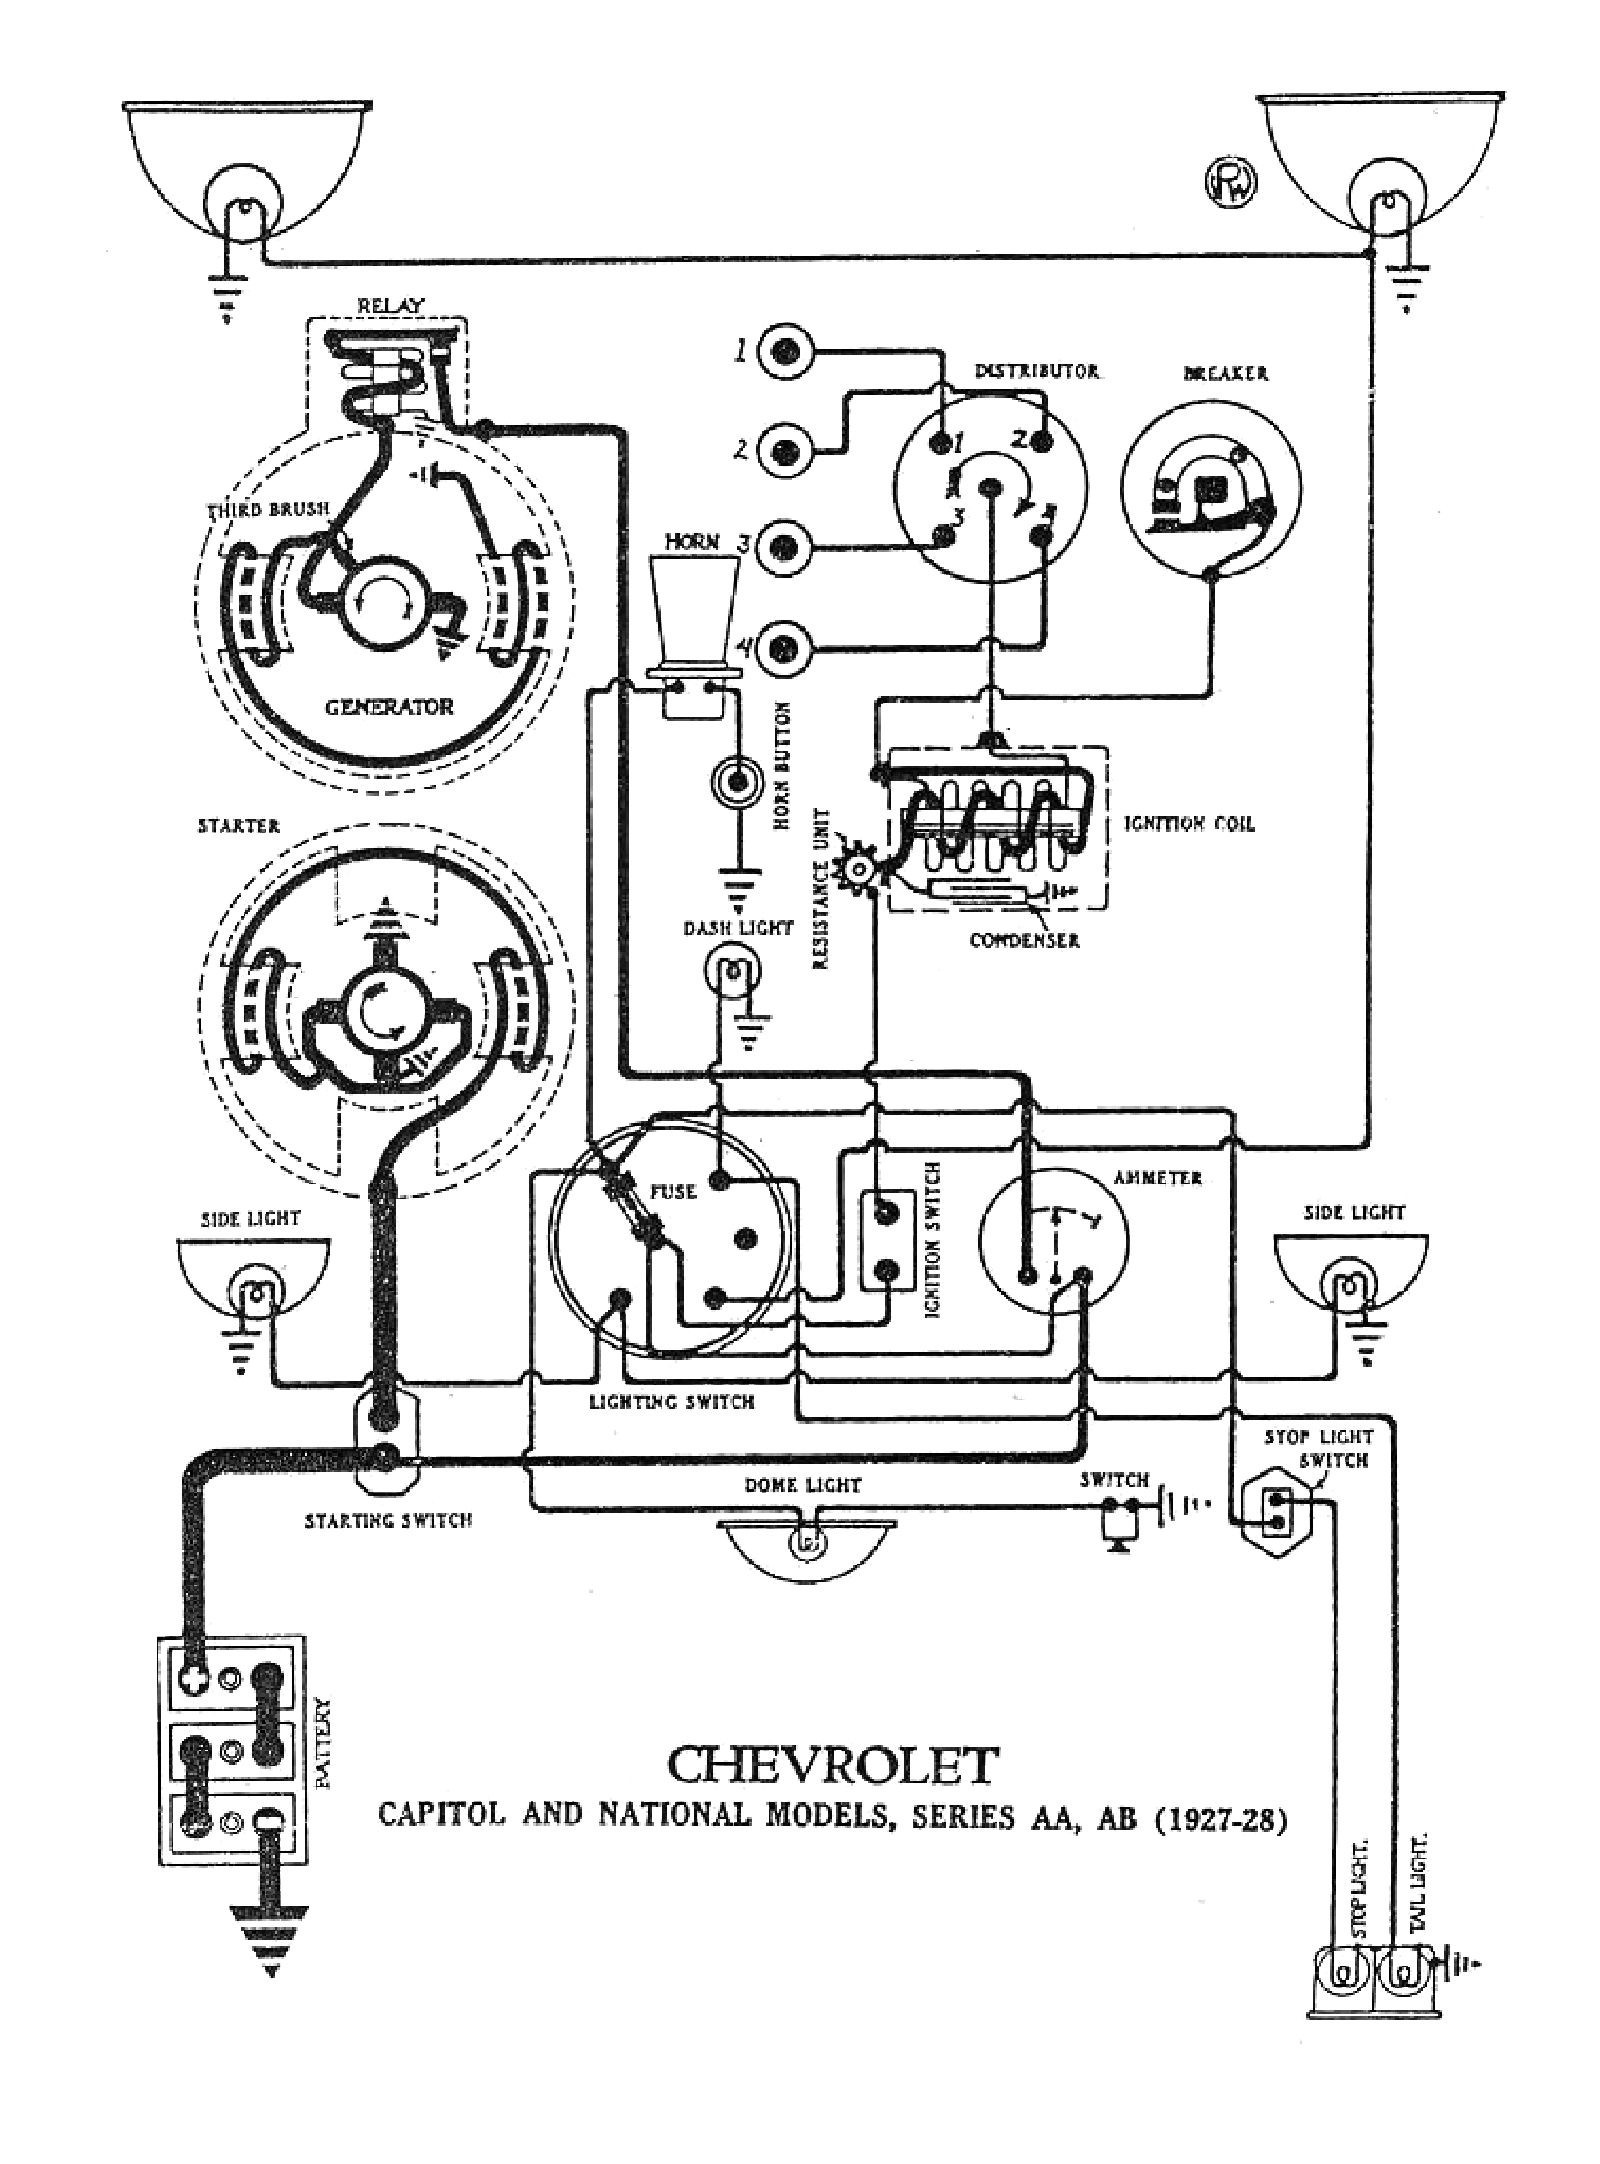 2000 Chevy S10 2 2 Engine Diagram 1998 Chevy S10 2 2 Engine Diagram Of 2000 Chevy S10 2 2 Engine Diagram